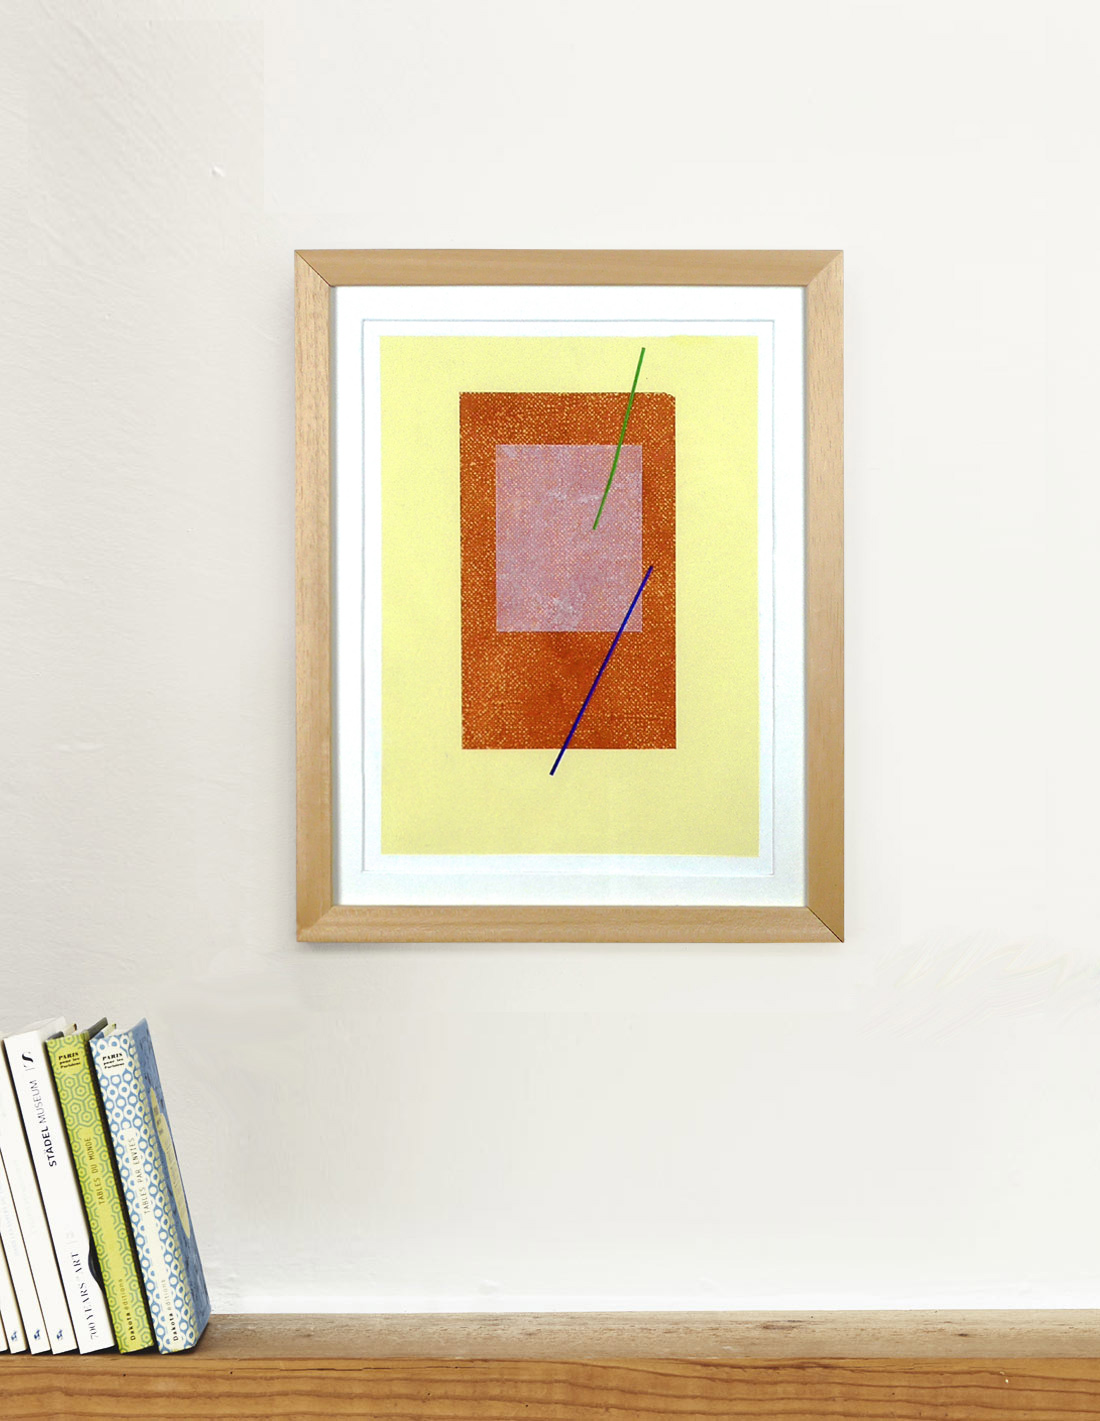 Carlos Stoffel - Tableau - Jaune rectangle orange